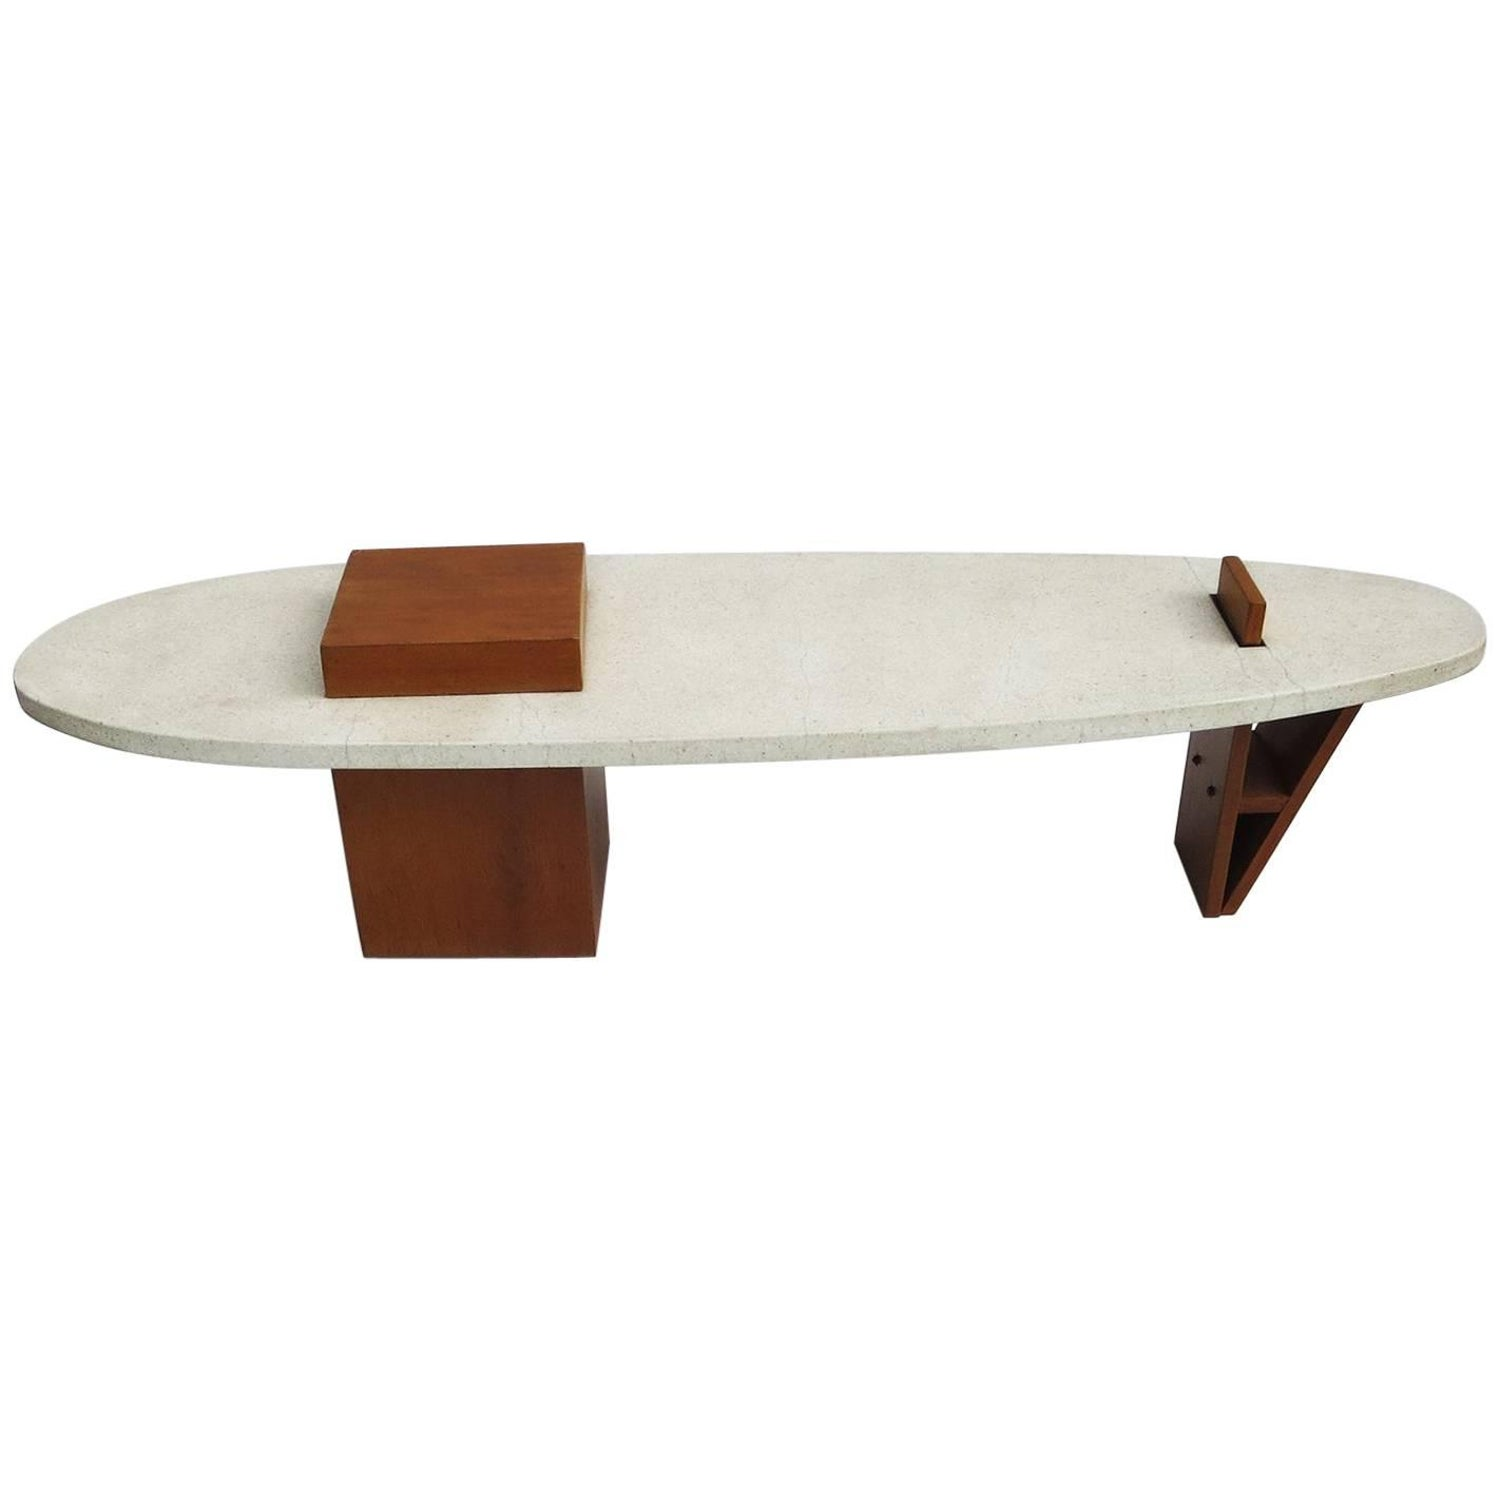 "Terrazzo ""SURFBOARD"" coffee table by Harvey Probber at 1stdibs"